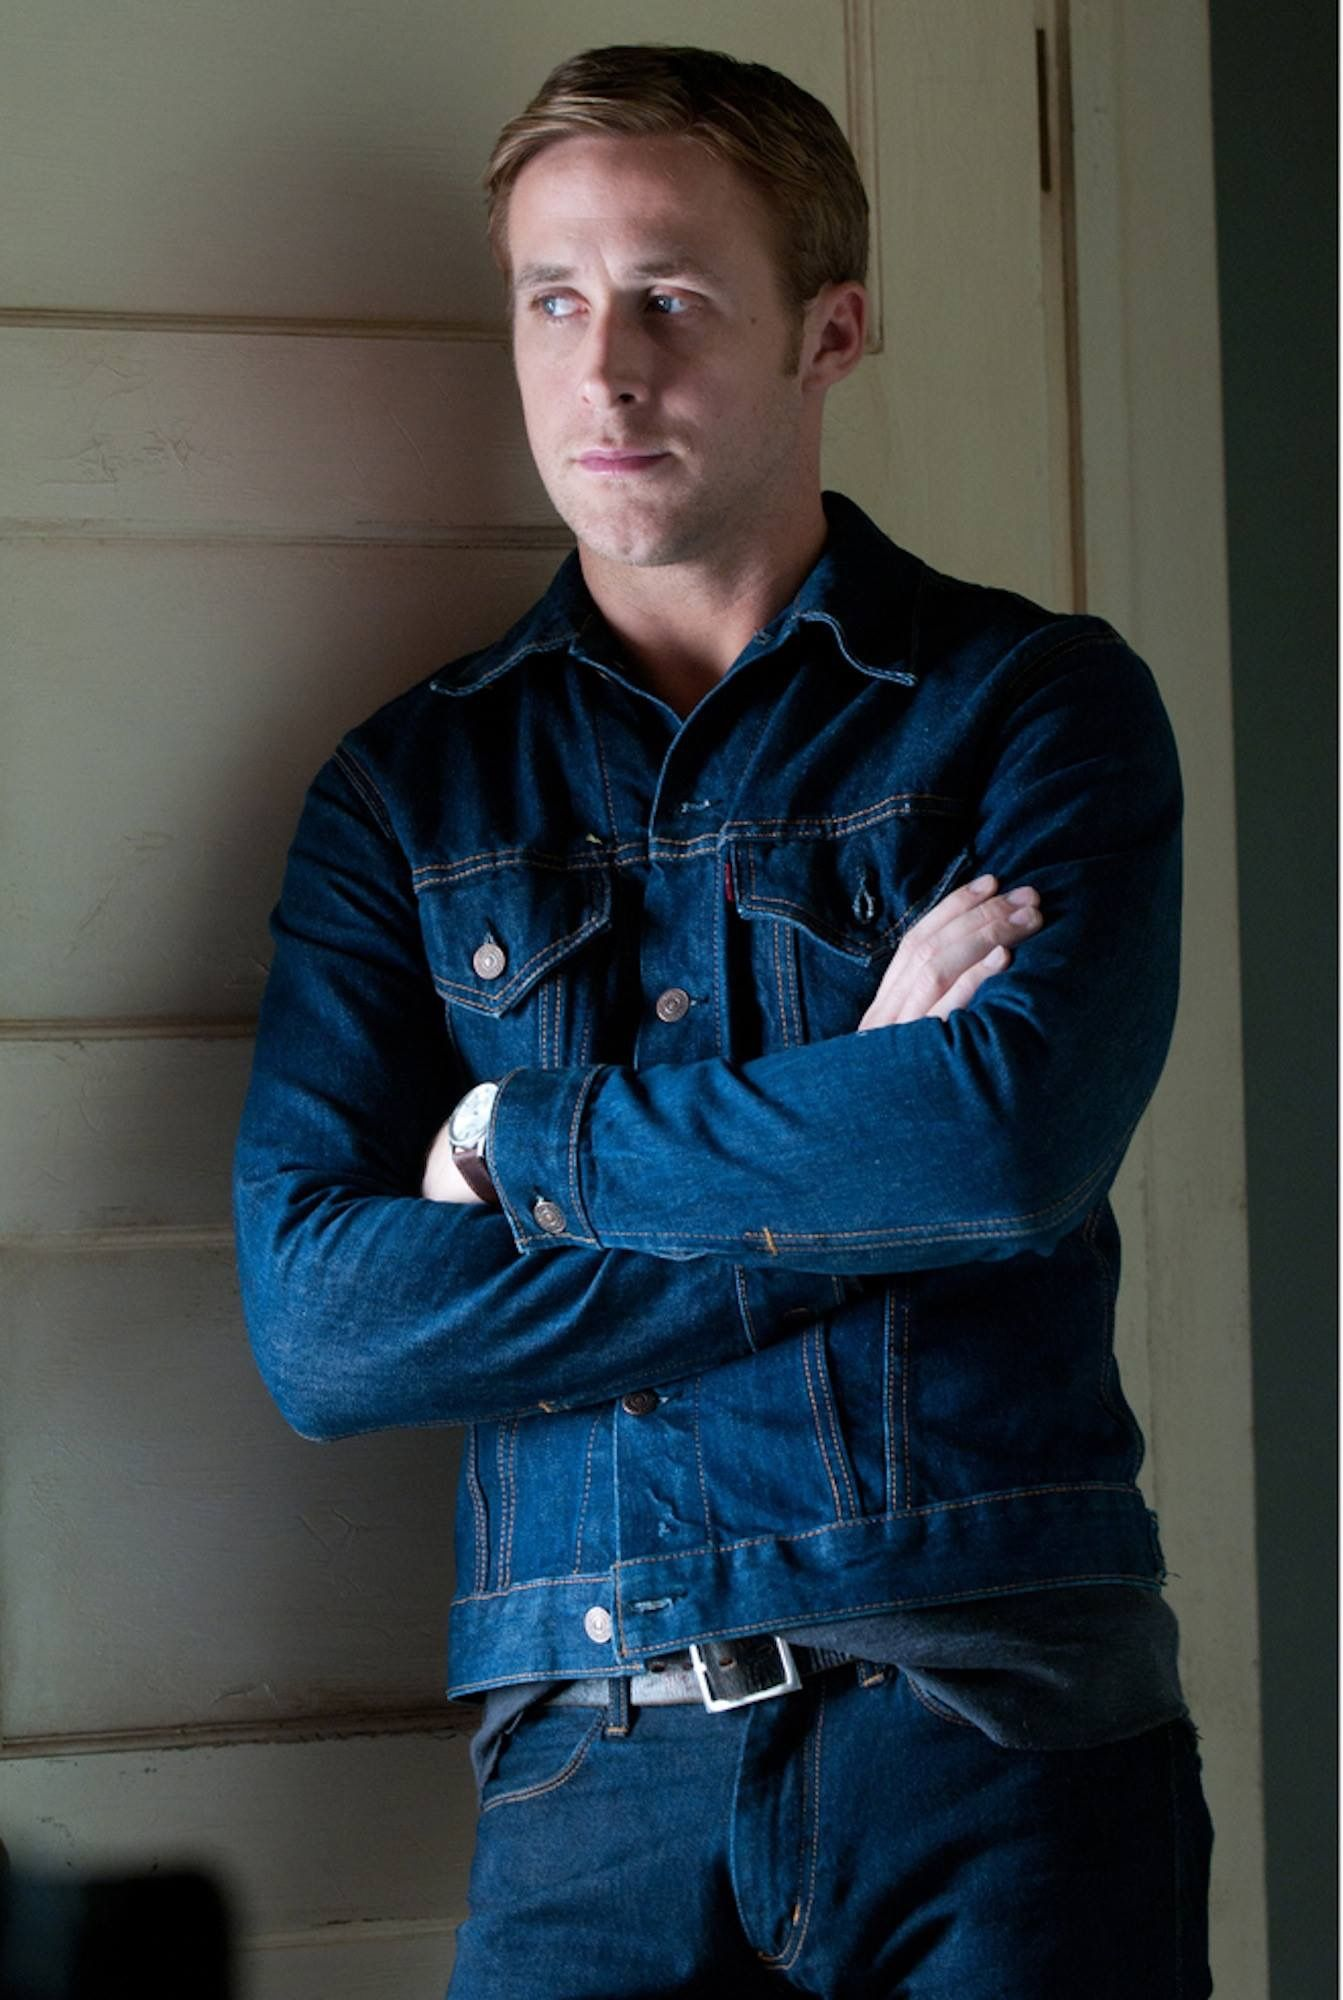 Pin By Vivian On Ryan Gosling Ryan Gosling Style Denim Stylish Mens Outfits